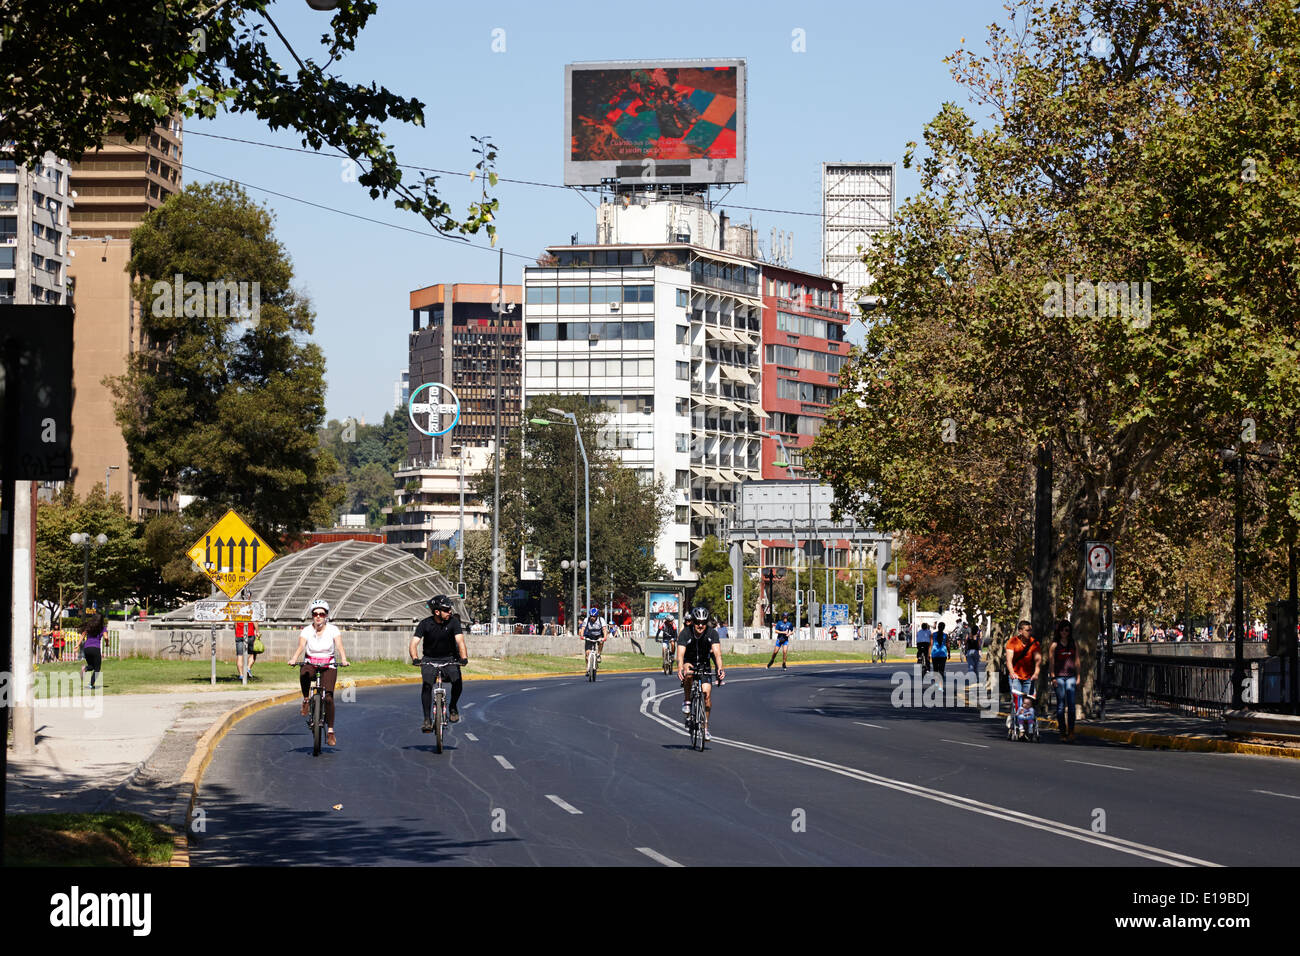 sunday morning roads closed for cyclists and walkers providencia Santiago Chile - Stock Image